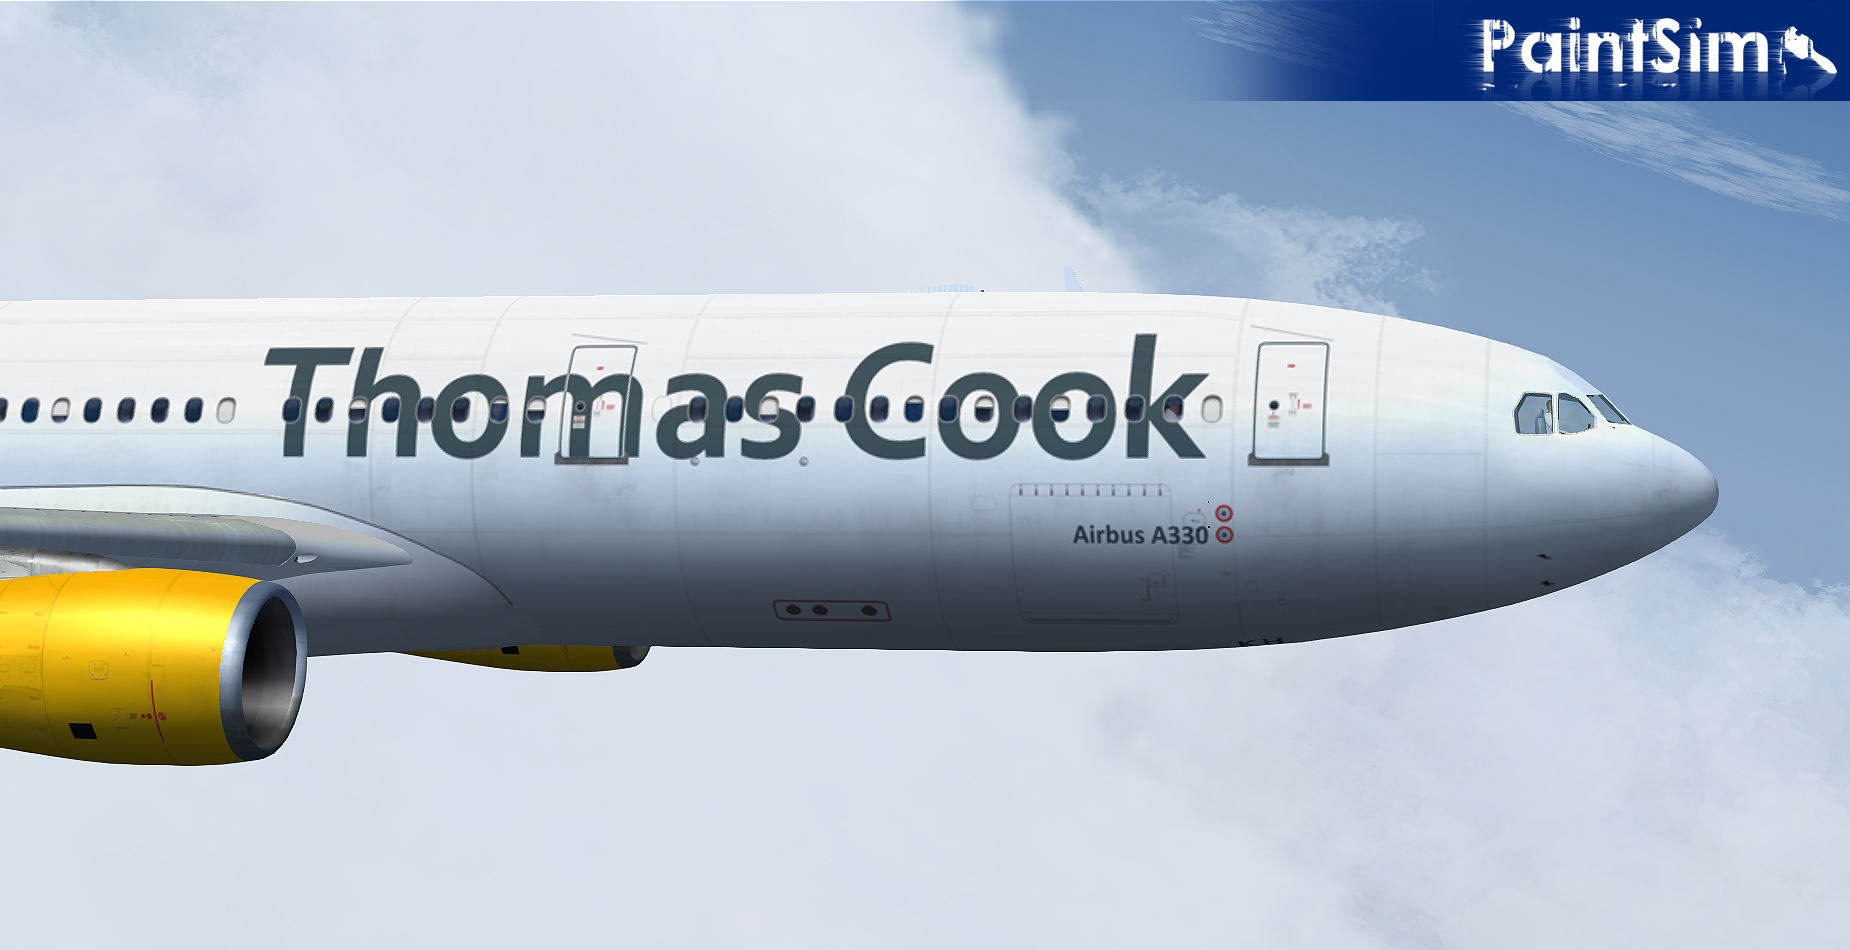 PAINTSIM - HD TEXTURE PACK 2 FOR WILCO AIRBUS A330-300 FS2004